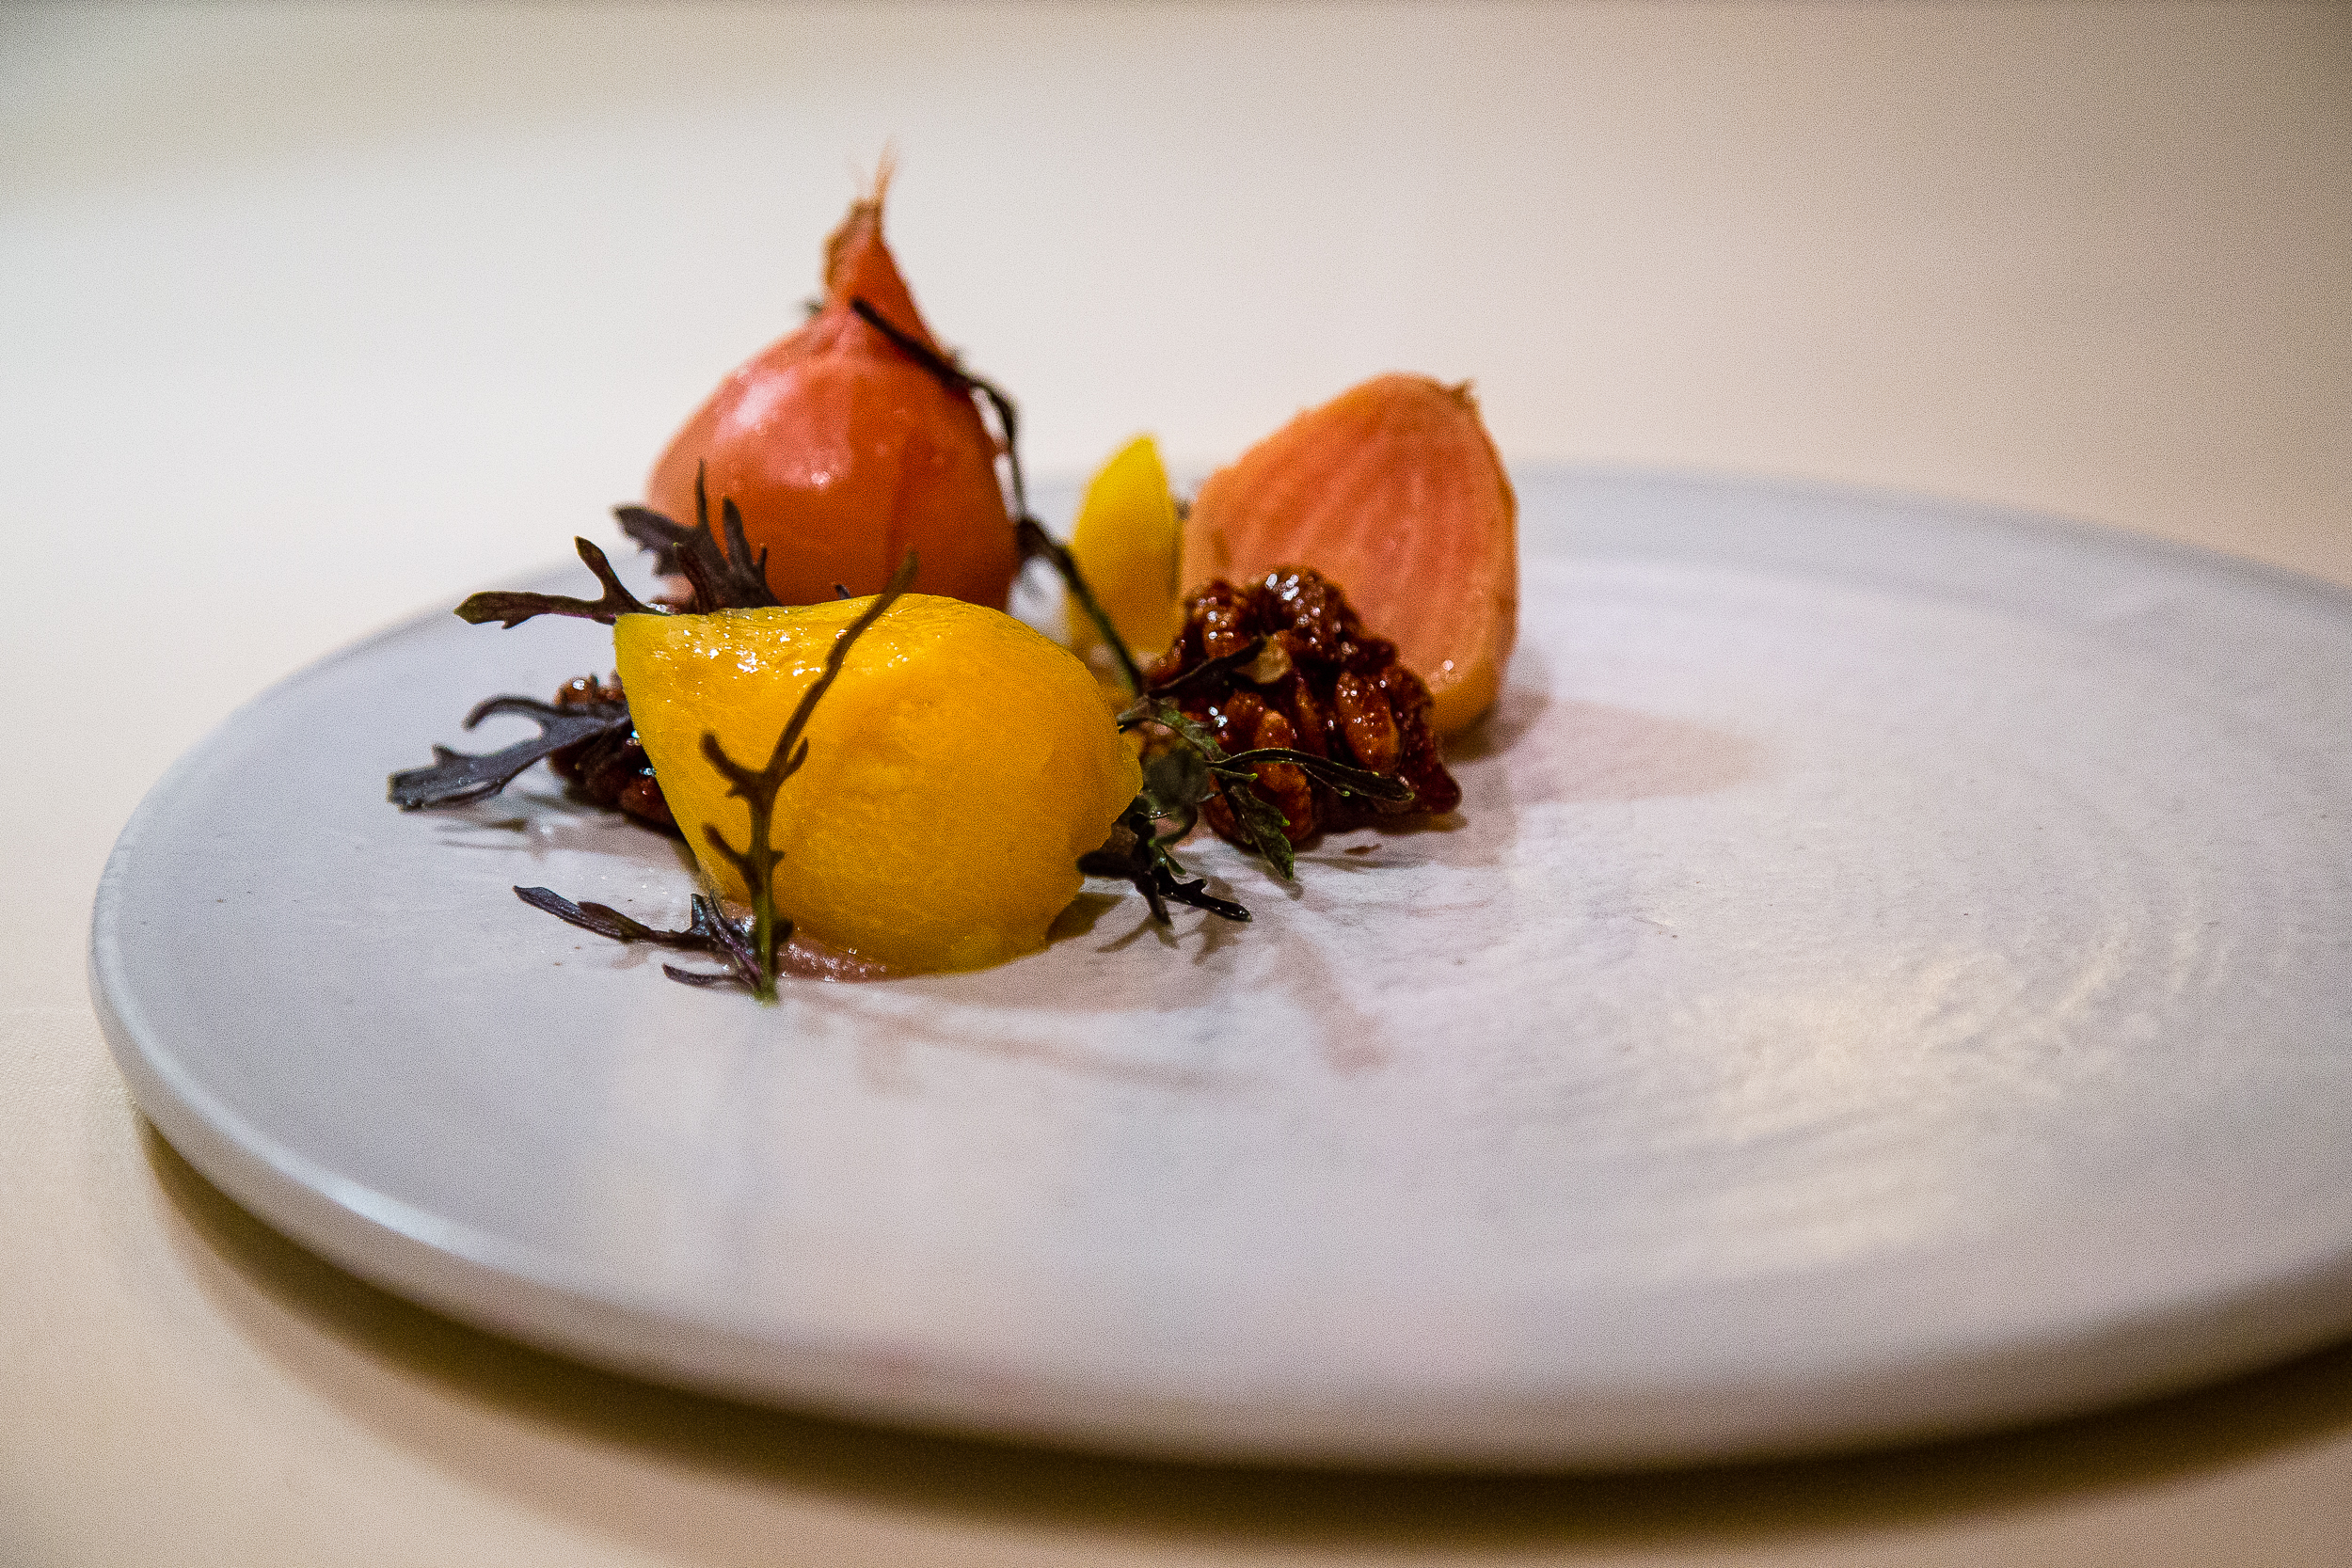 Pickled Beets with Candied Walnuts and Mustard Greens